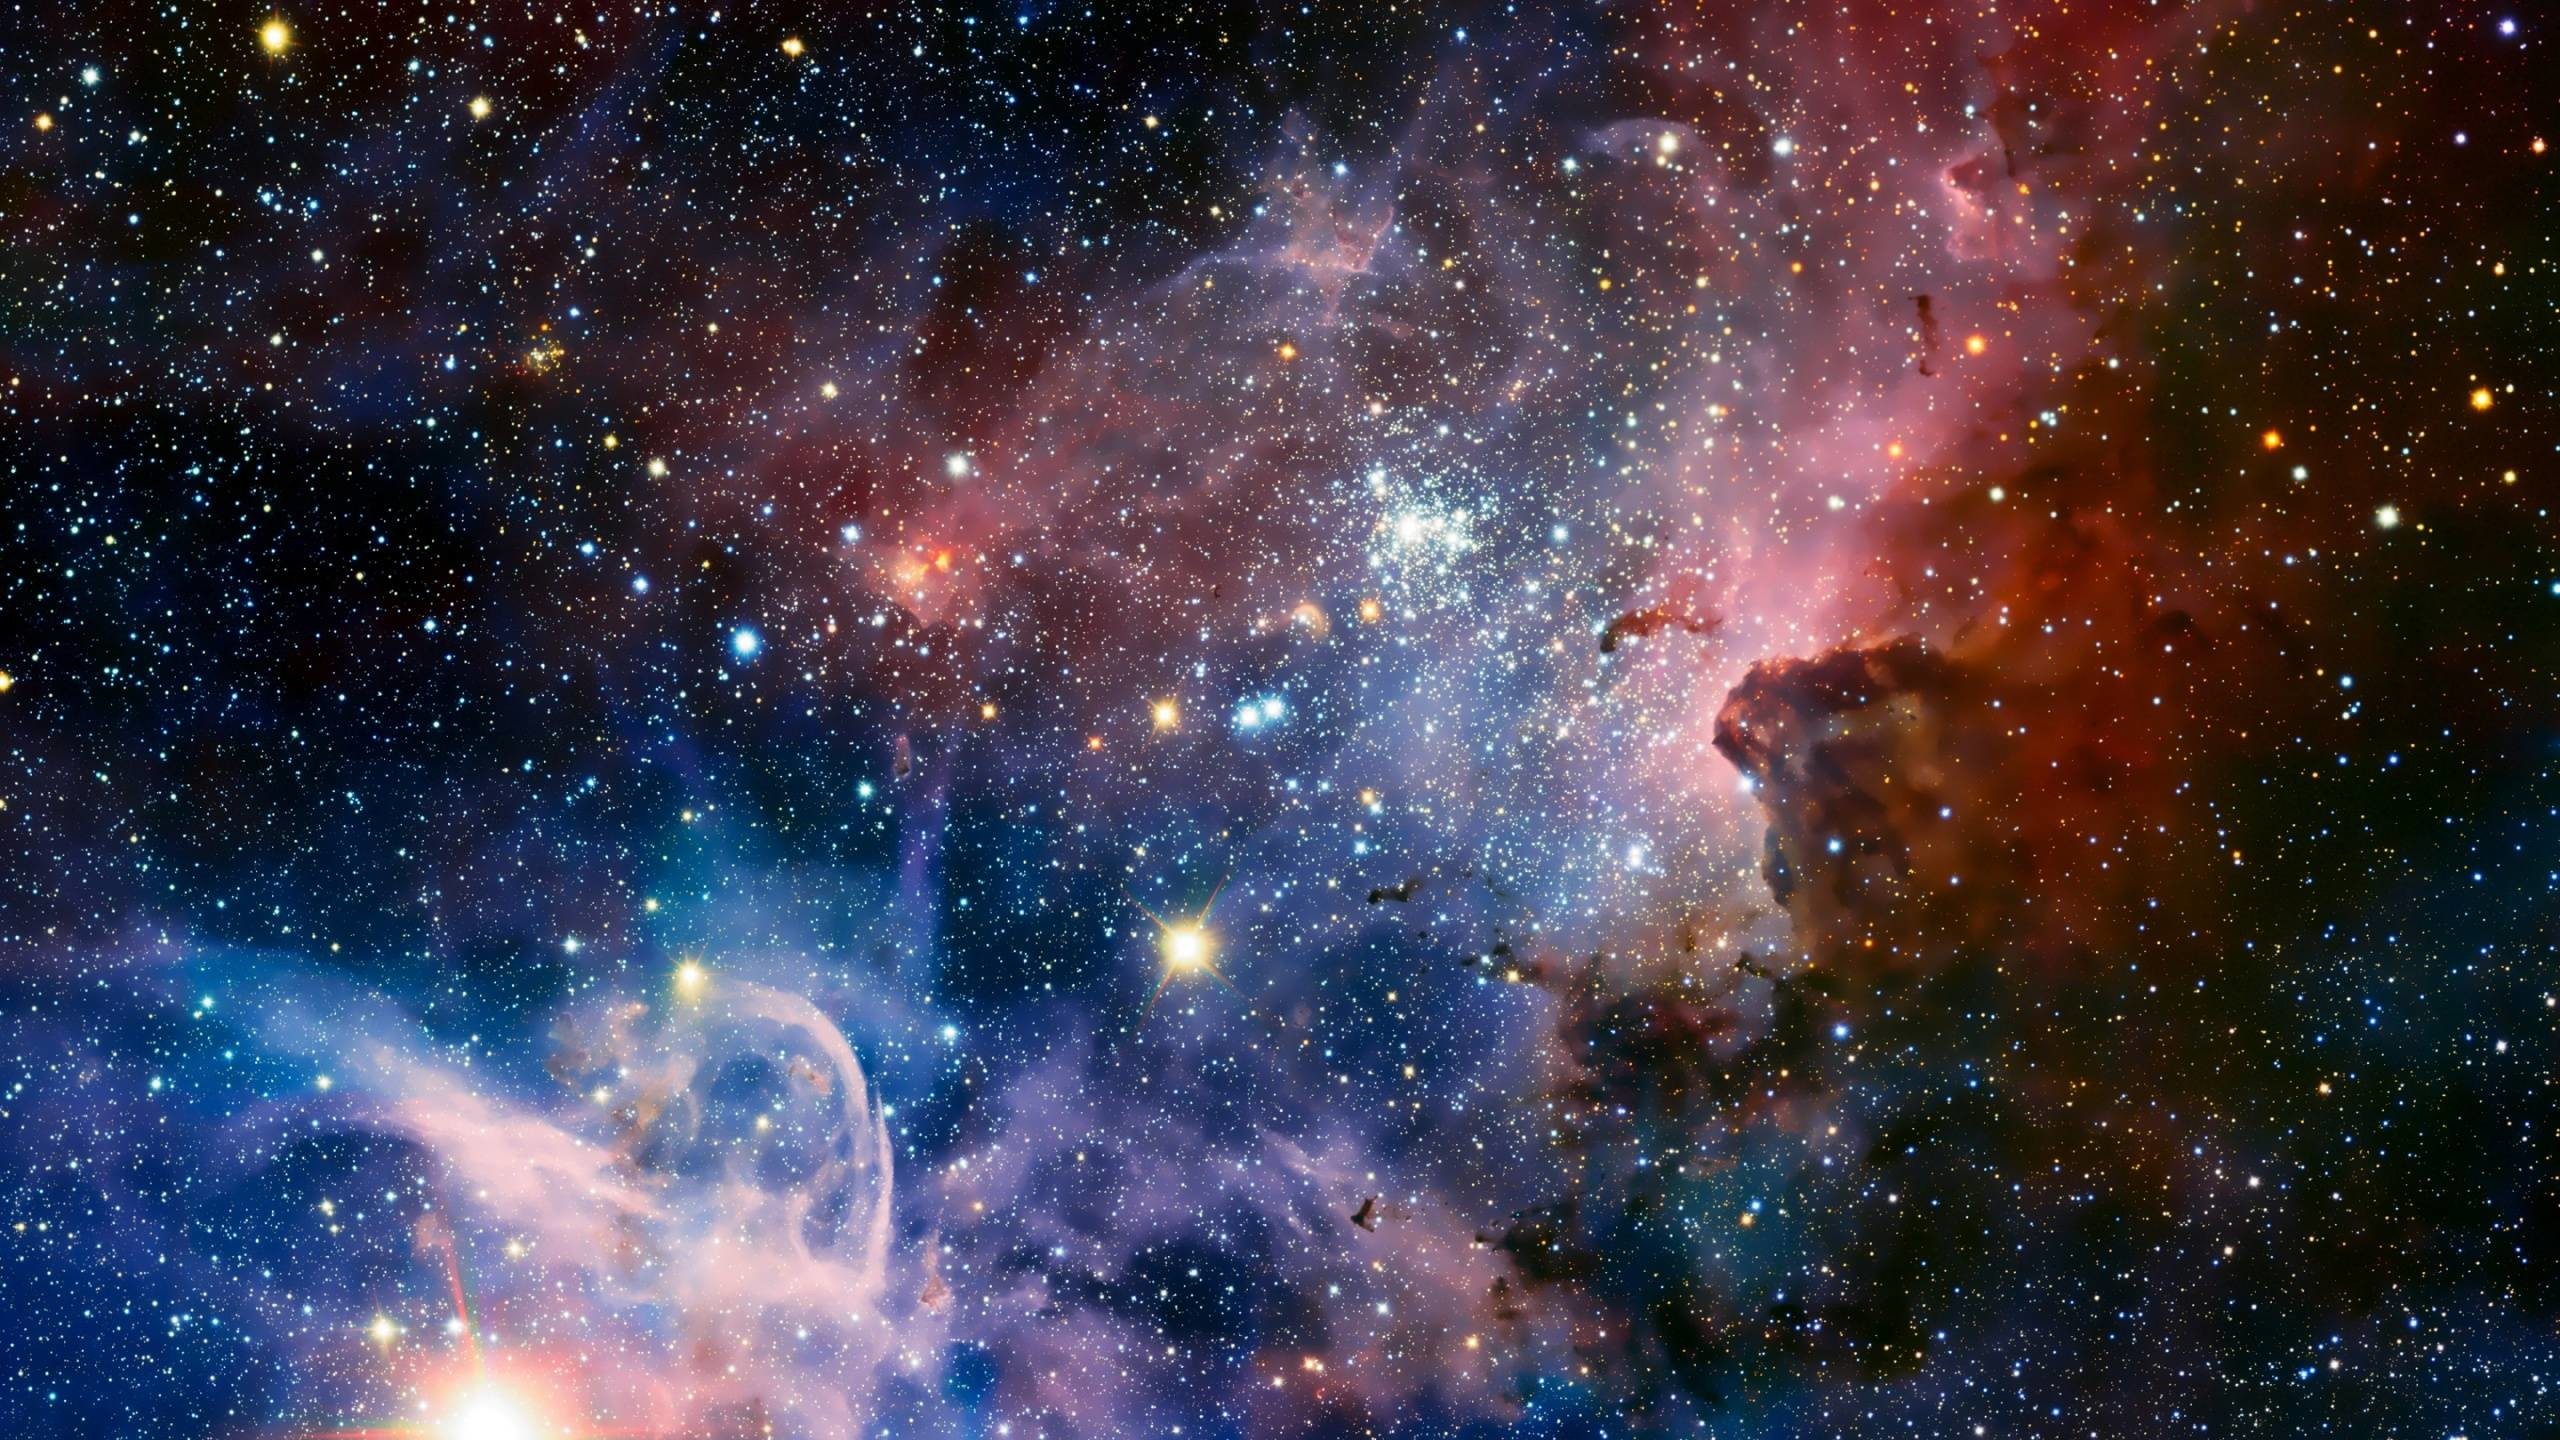 Backgrounds space 70 images 2560x1440 wallpapers for cool backgrounds of space with stars voltagebd